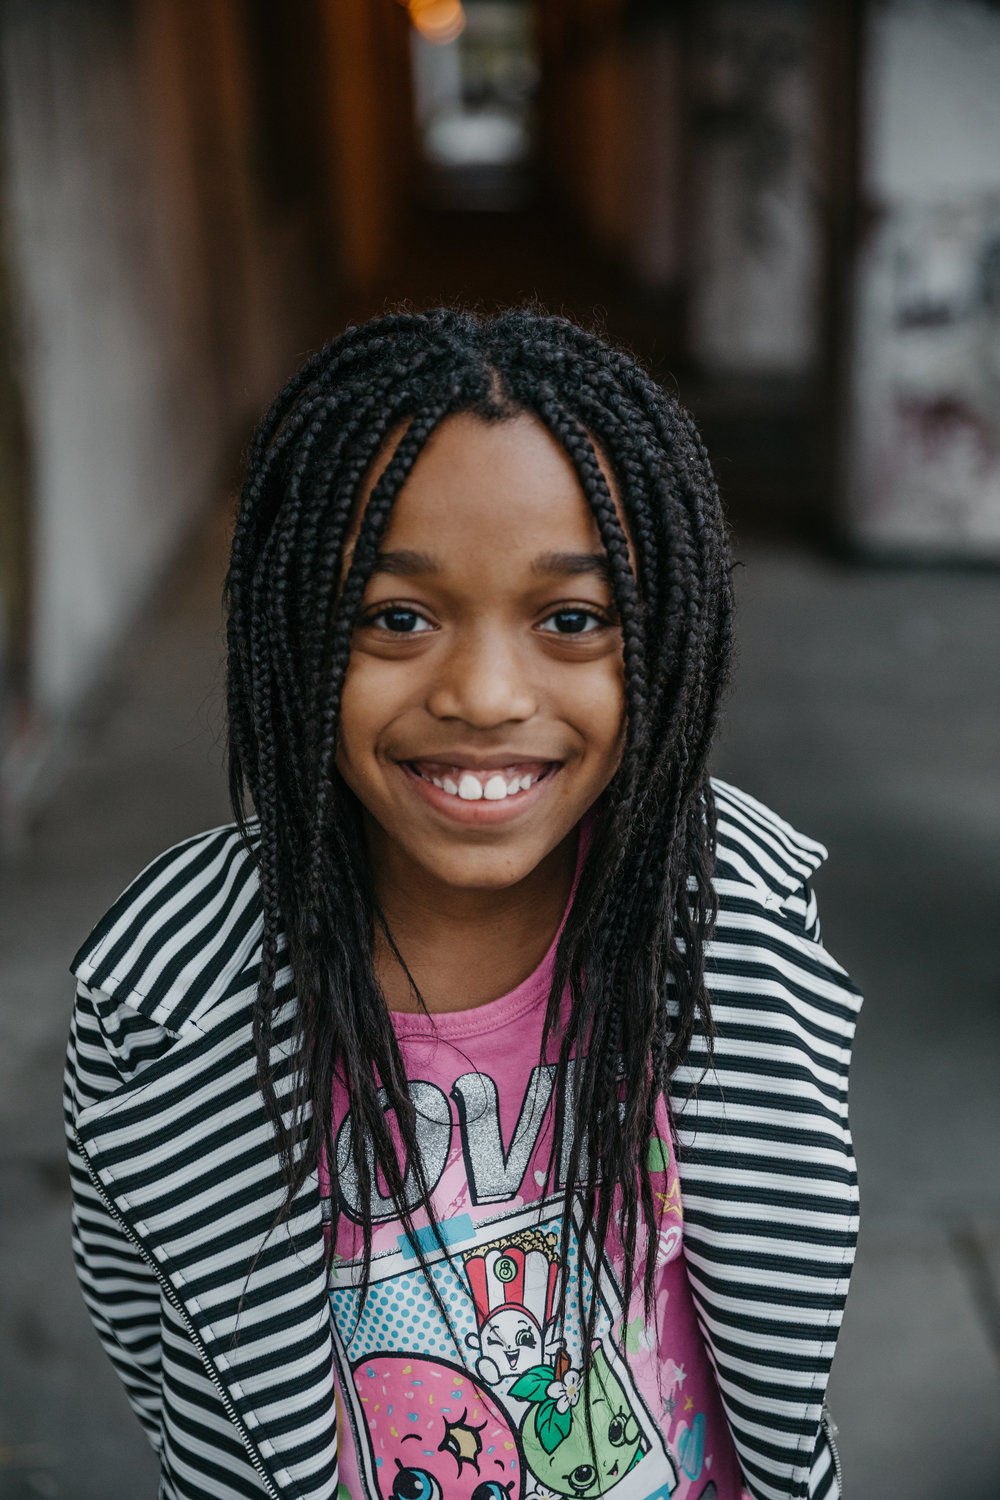 Amira Nicole Pope - Meet Amira PopeAmira is a born leader. You can often find her organizing and leading protests on the playground at school on issues ranging from Black Lives Matter to the length of the school lunch period. She is an artist, a writer, and an advocate for juvenile Type I diabetes. Q+AHow old are you? 10 years oldWhat are you passionate about? Art and Directing. I just had to cancel a movie I was in the middle of making because one of my best actresses quit because there was too much drama though.Who inspires you? My sister Bailey. She is loud. I like her volume.What makes you a badass? I run fast. I organize protests. What do you wish adults knew? I need cash. I need investors in my movies, but mostly cash.What else do you want people to know? I have sweet friends who are a little crazy. I'm a comedian and I create lots of comic books. Also, Star Wars is my favorite movie.Follow up question: Who is your favorite character in Star Wars? Princess Leia. Why? Because she's Princess Leia! Important Note: Amira is fundraising for her Team who is Walking For A World Without Juvenile Diabetes. Click here to donate.